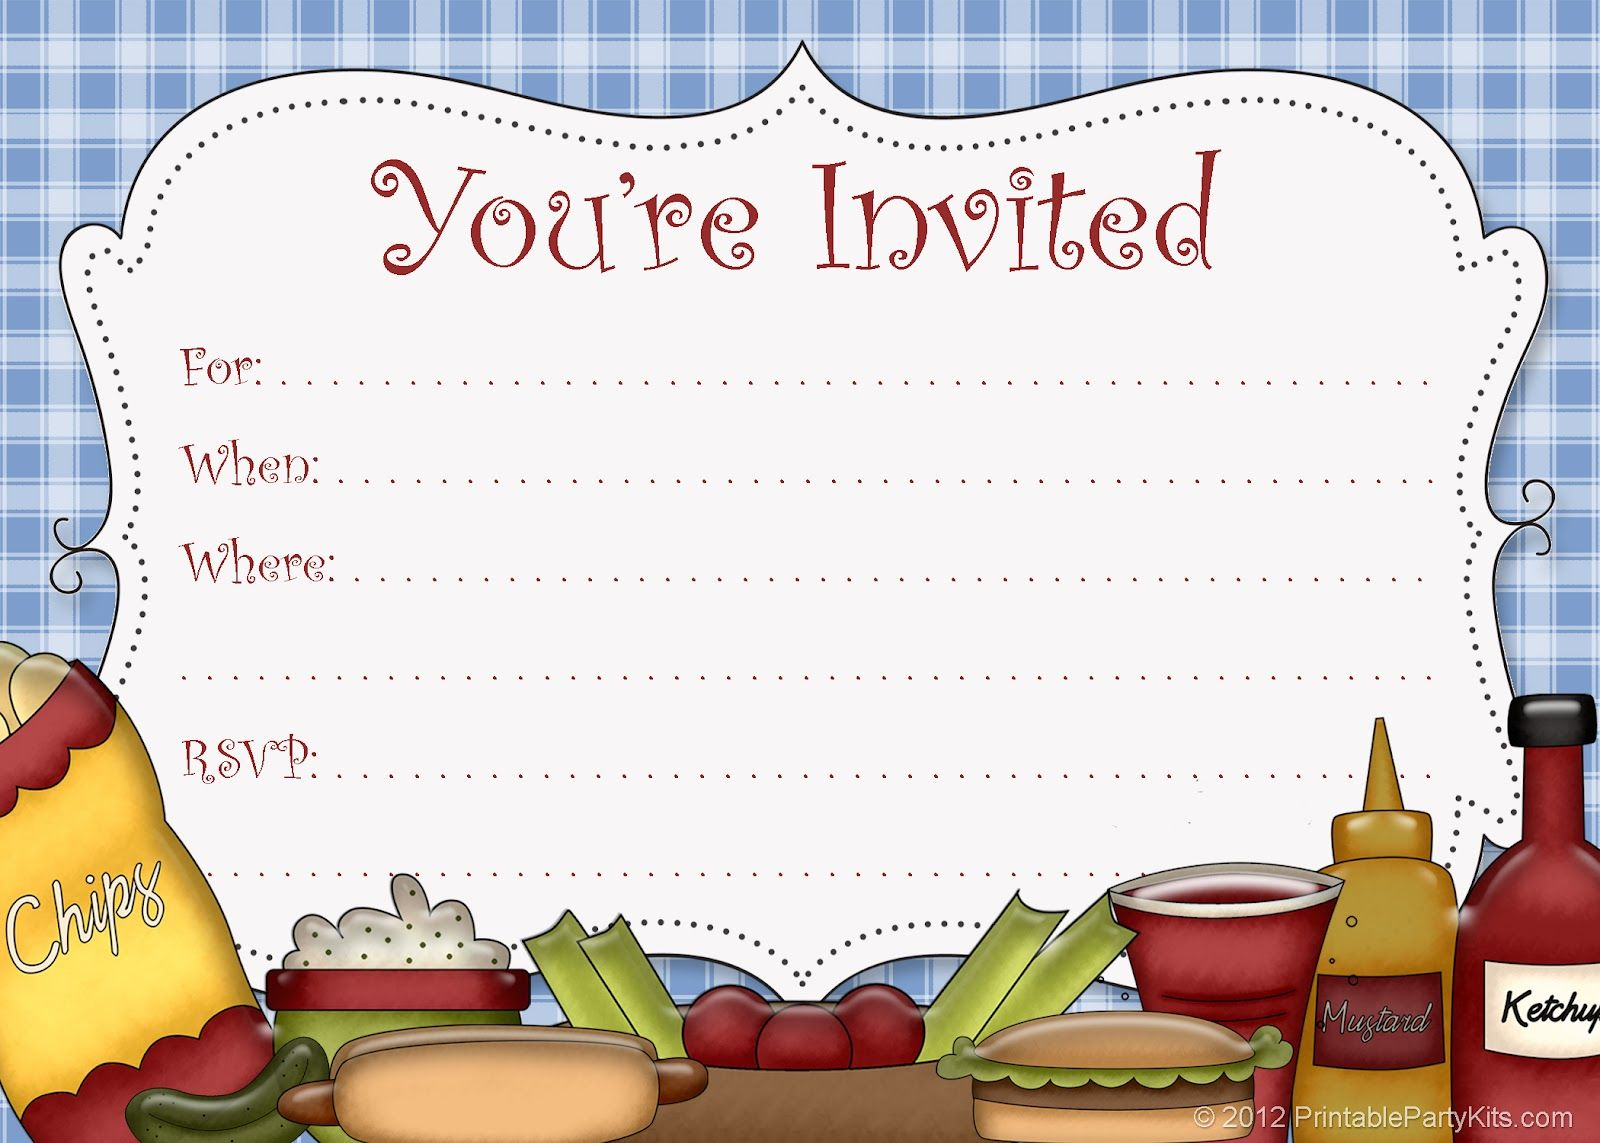 photograph about Free Printable Picnic Invitation Template called Free of charge printable picnic invitation Occasion Printables Picnic